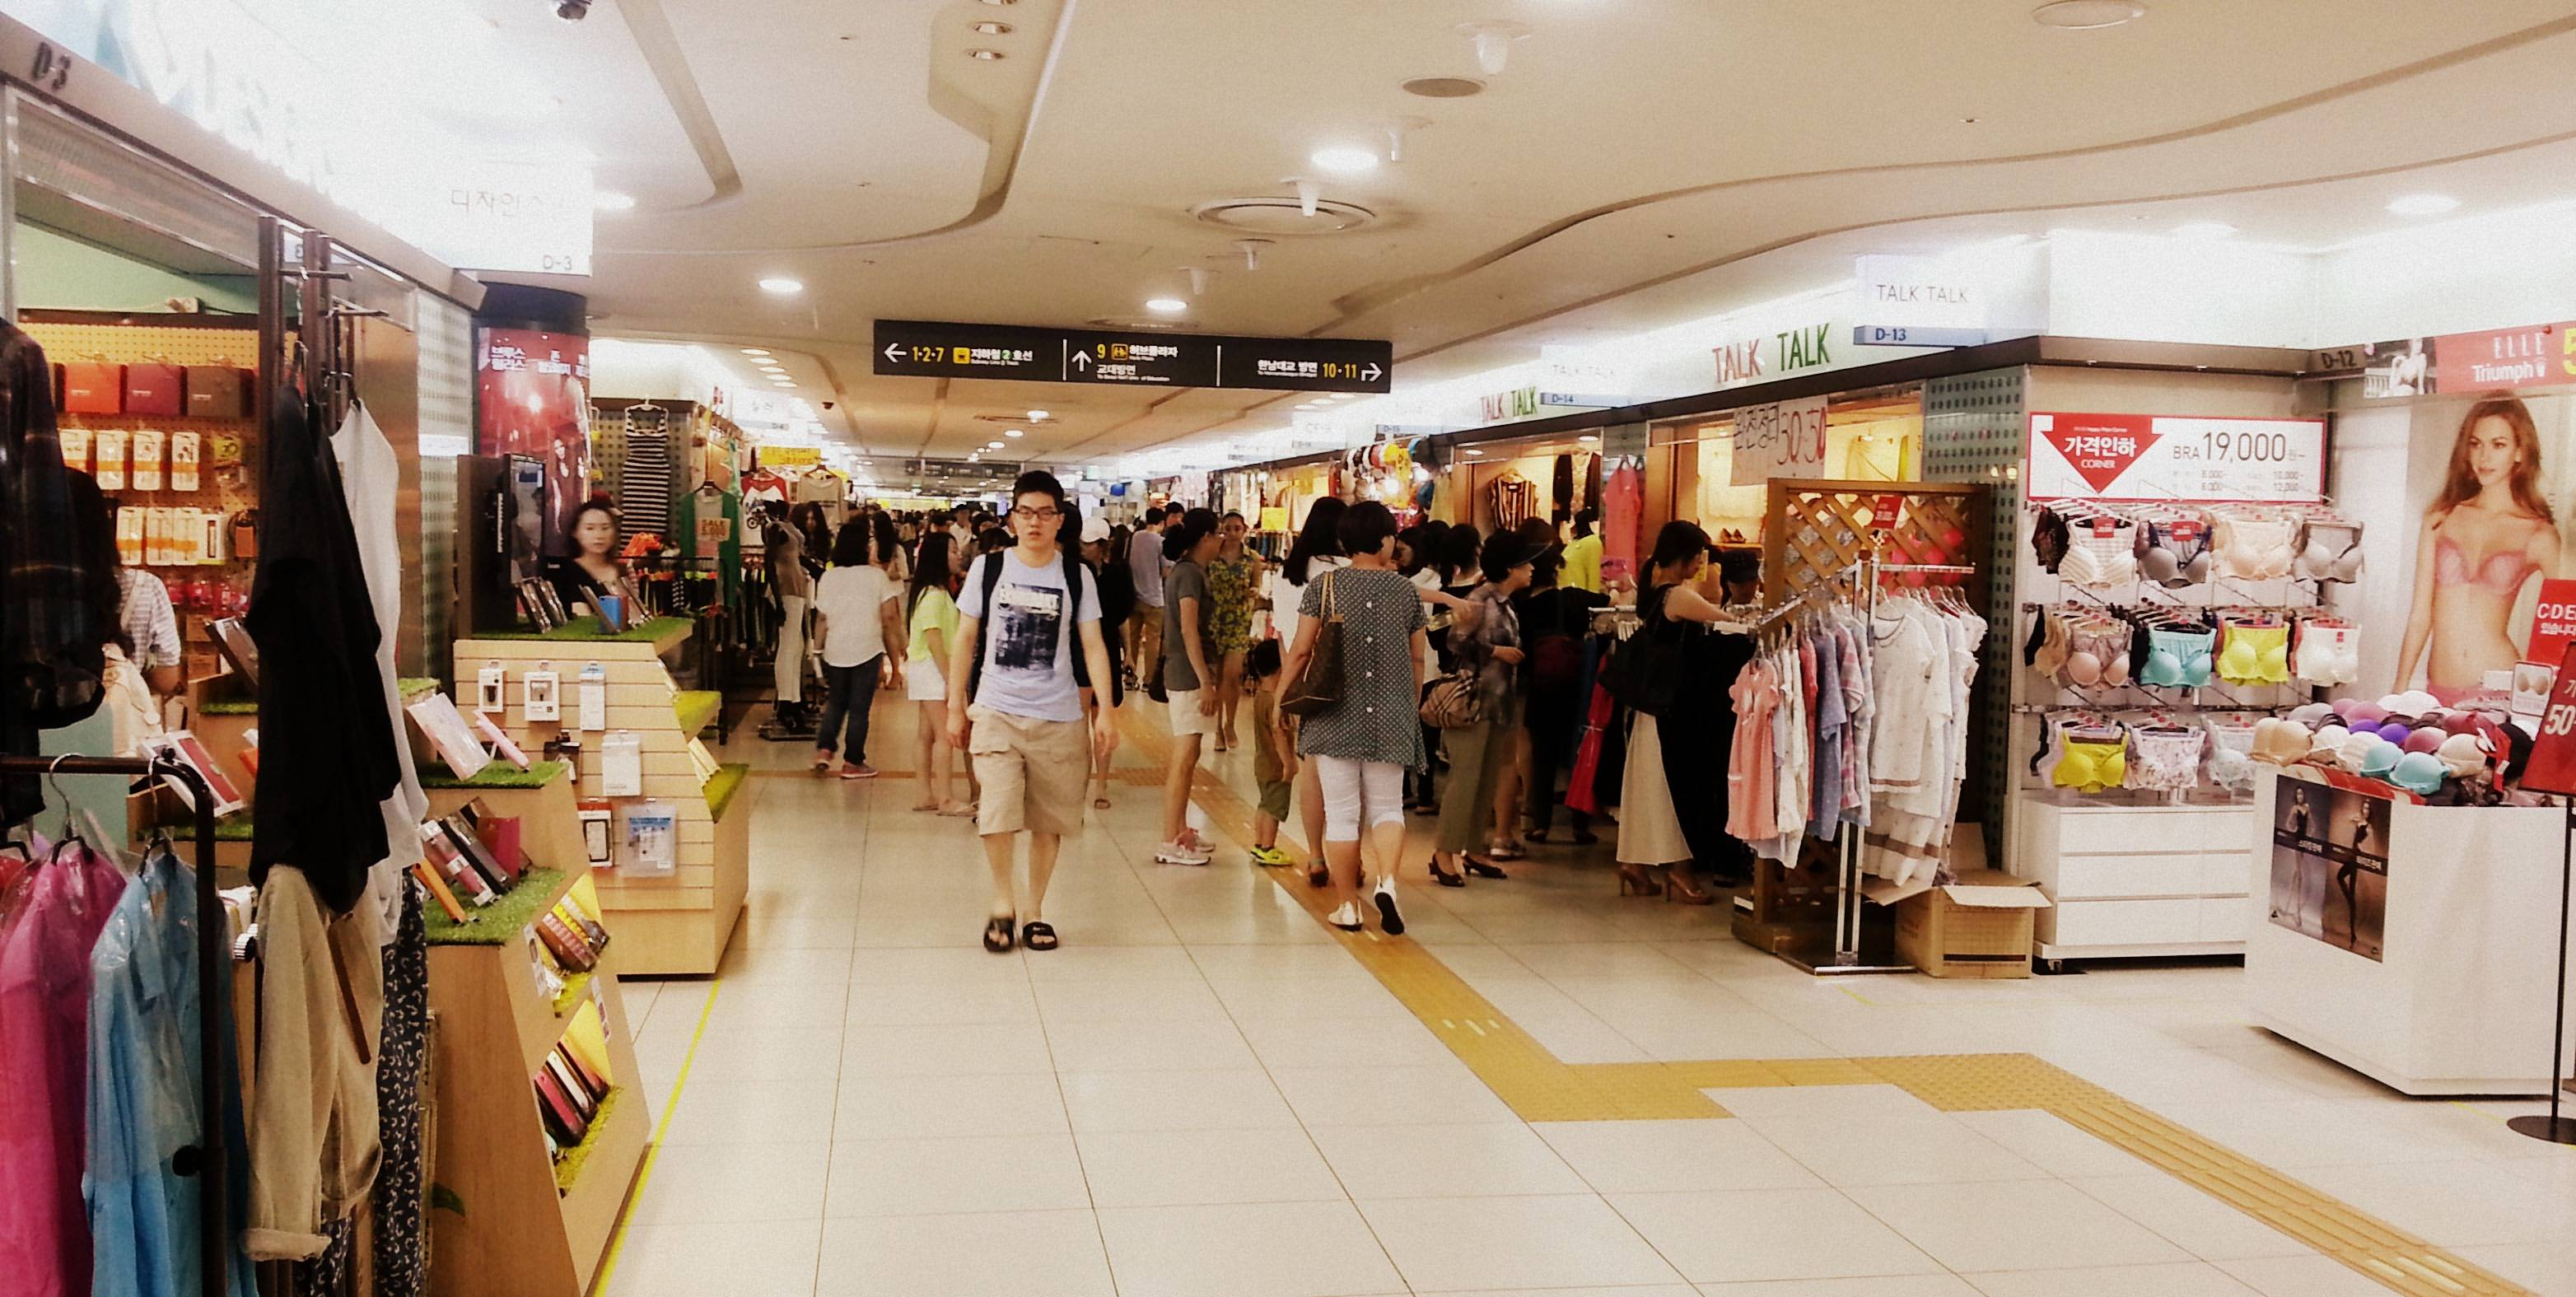 Gangnam Station Underground Shopping Center